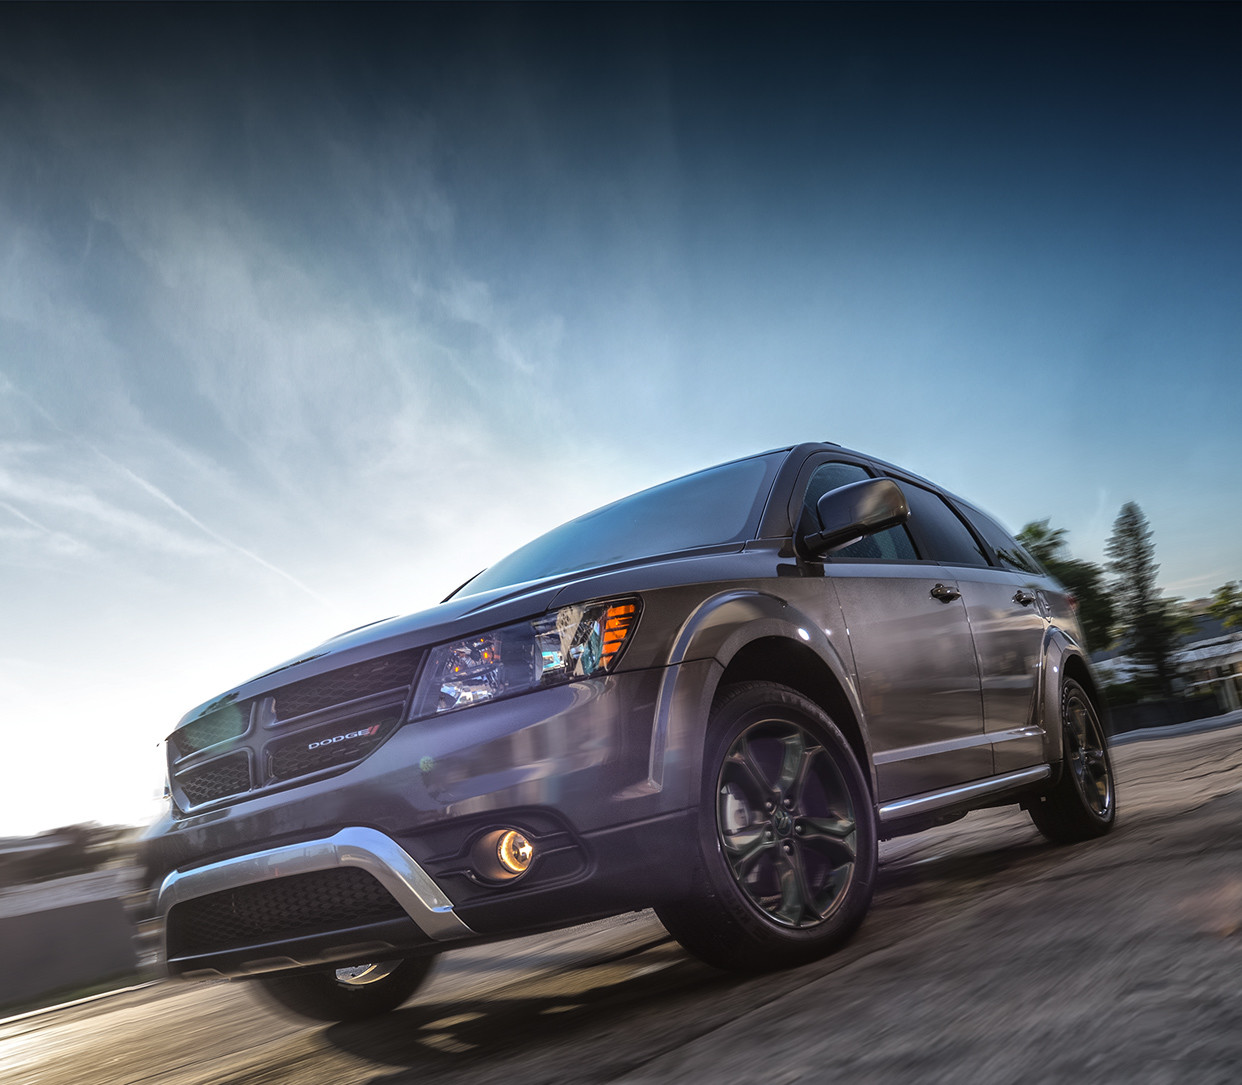 Front view of the red 2020 Dodge Journey driving on a country road